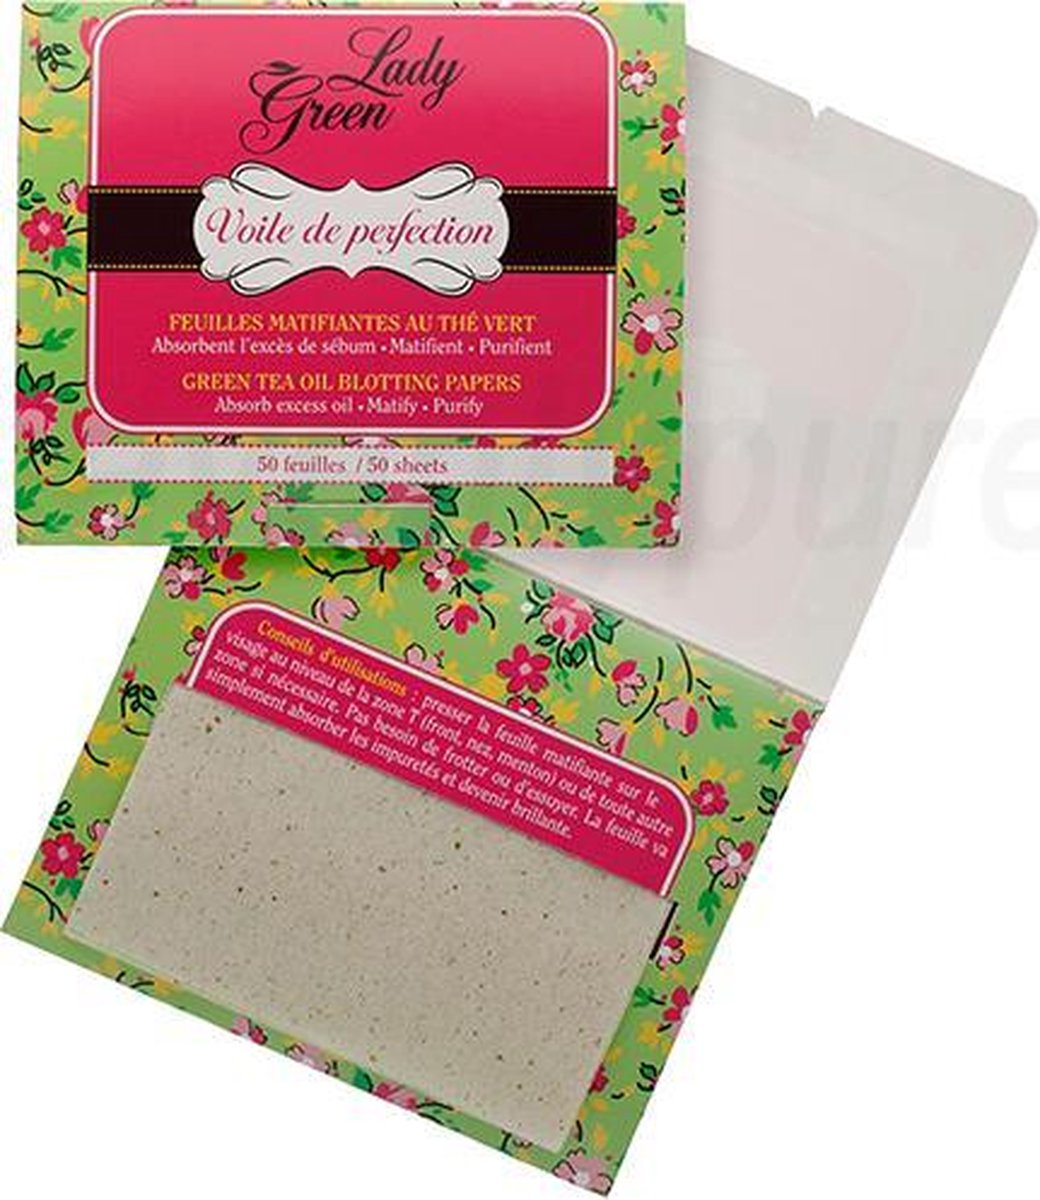 Voile de Perfection - Blotting Sheets